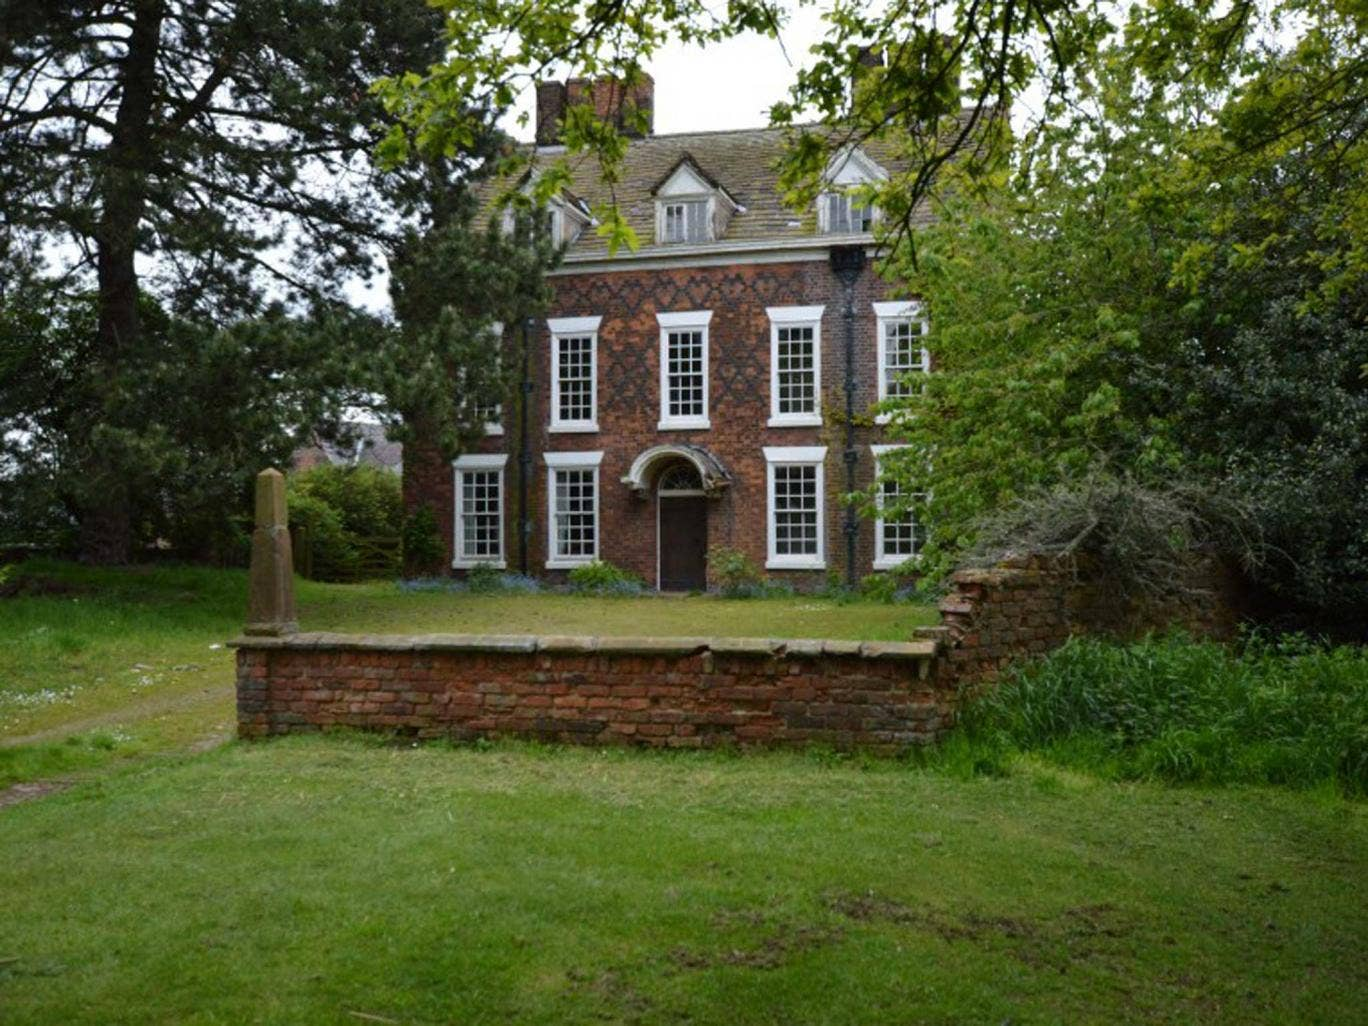 Eight bedroom property for sale in Aston Park House, Aston By Budworth, Northwich, Cheshire CW9. This Grade II listed house dates back to the 18th century and requires renovation. On with Auction House at a guide price of £225,000.